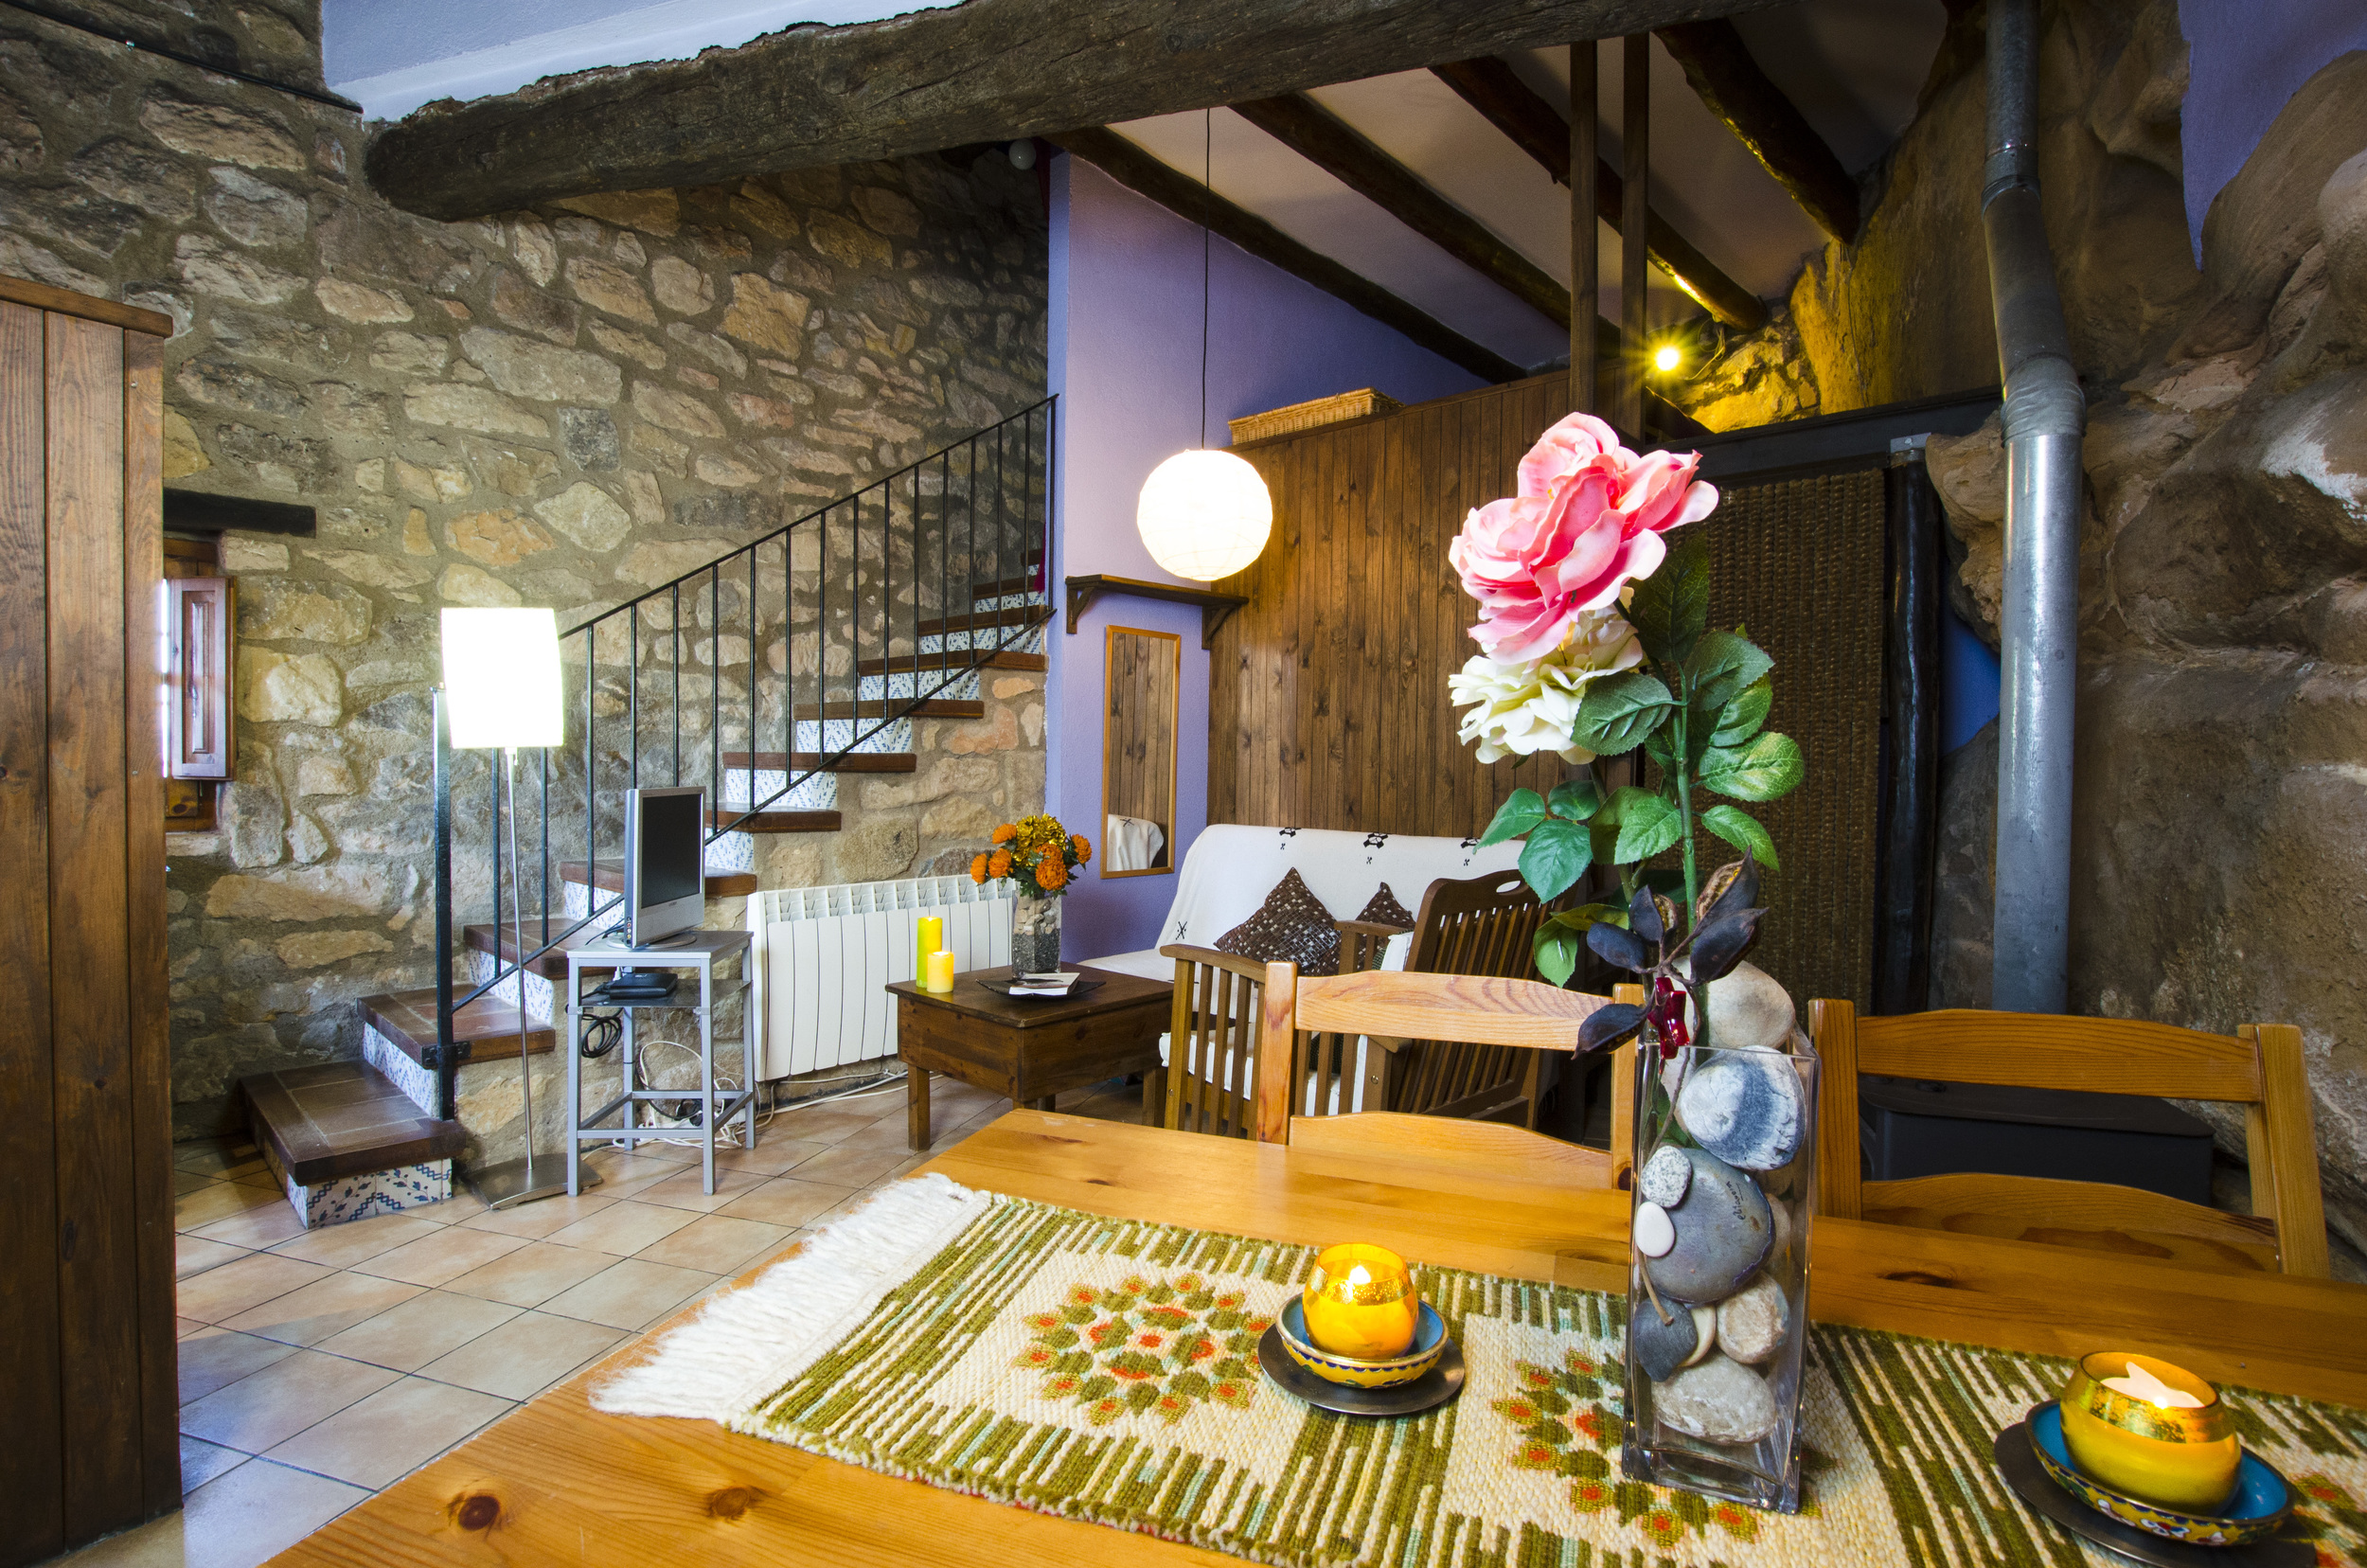 CASA EL CASTELL II, ALBARCA    2 rooms 5 people